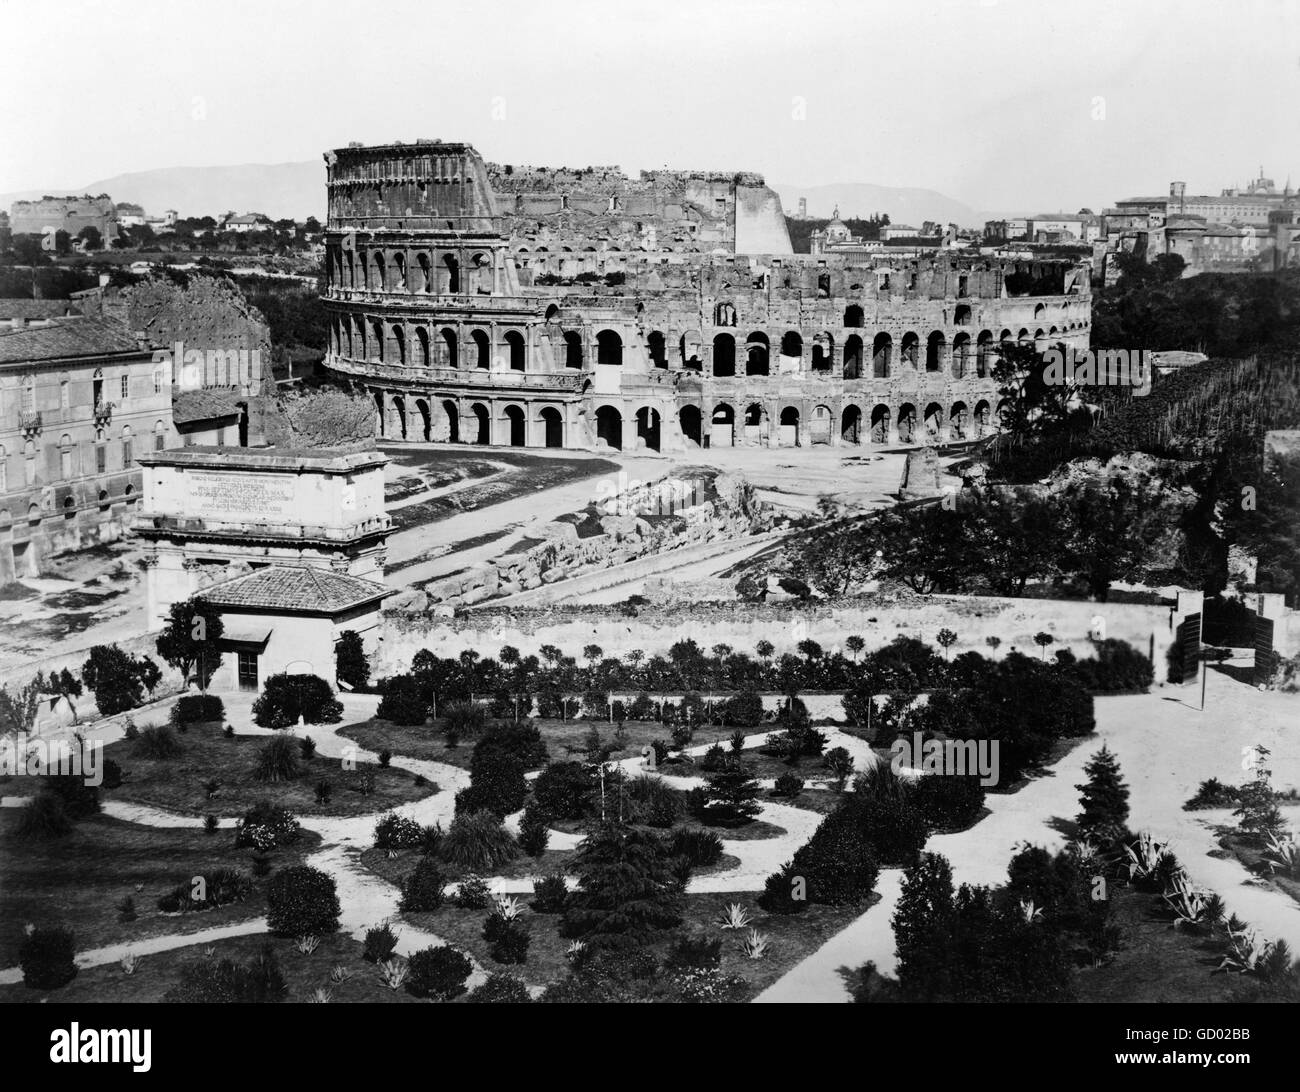 Colosseum, Rome. 19th century view of the Colosseum in Rome. Photo taken between 1860 and 1890 - Stock Image